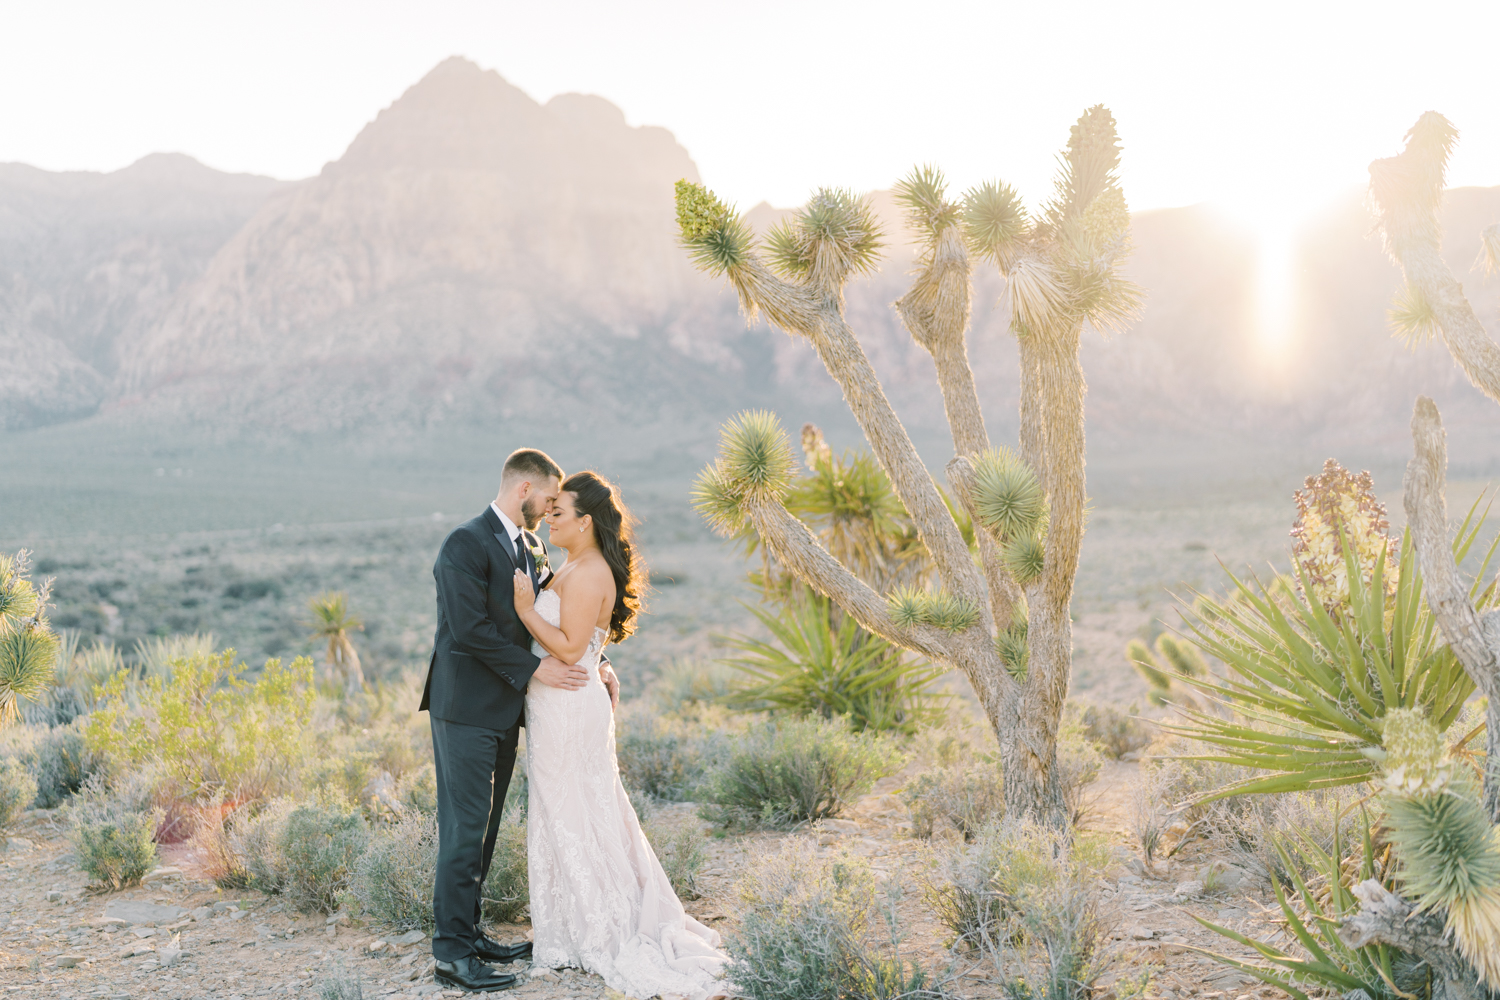 las vegas desert wedding locations